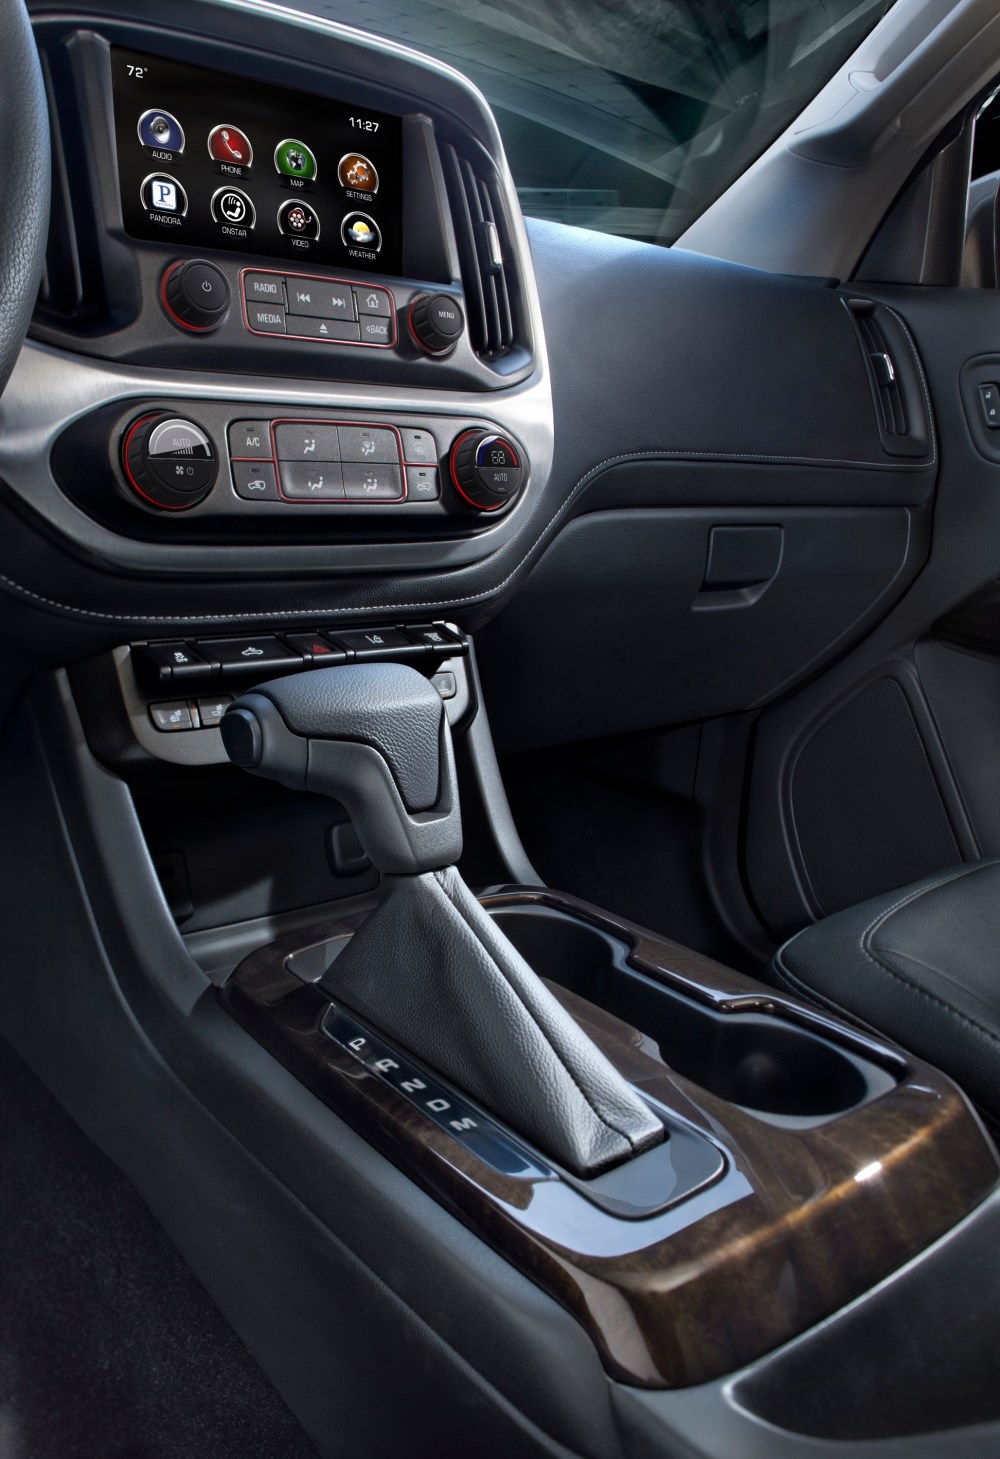 medium resolution of the all new 2015 gmc canyon s high level of customer focused technologies include an eight inch intellilink screen that will feature a new in car app